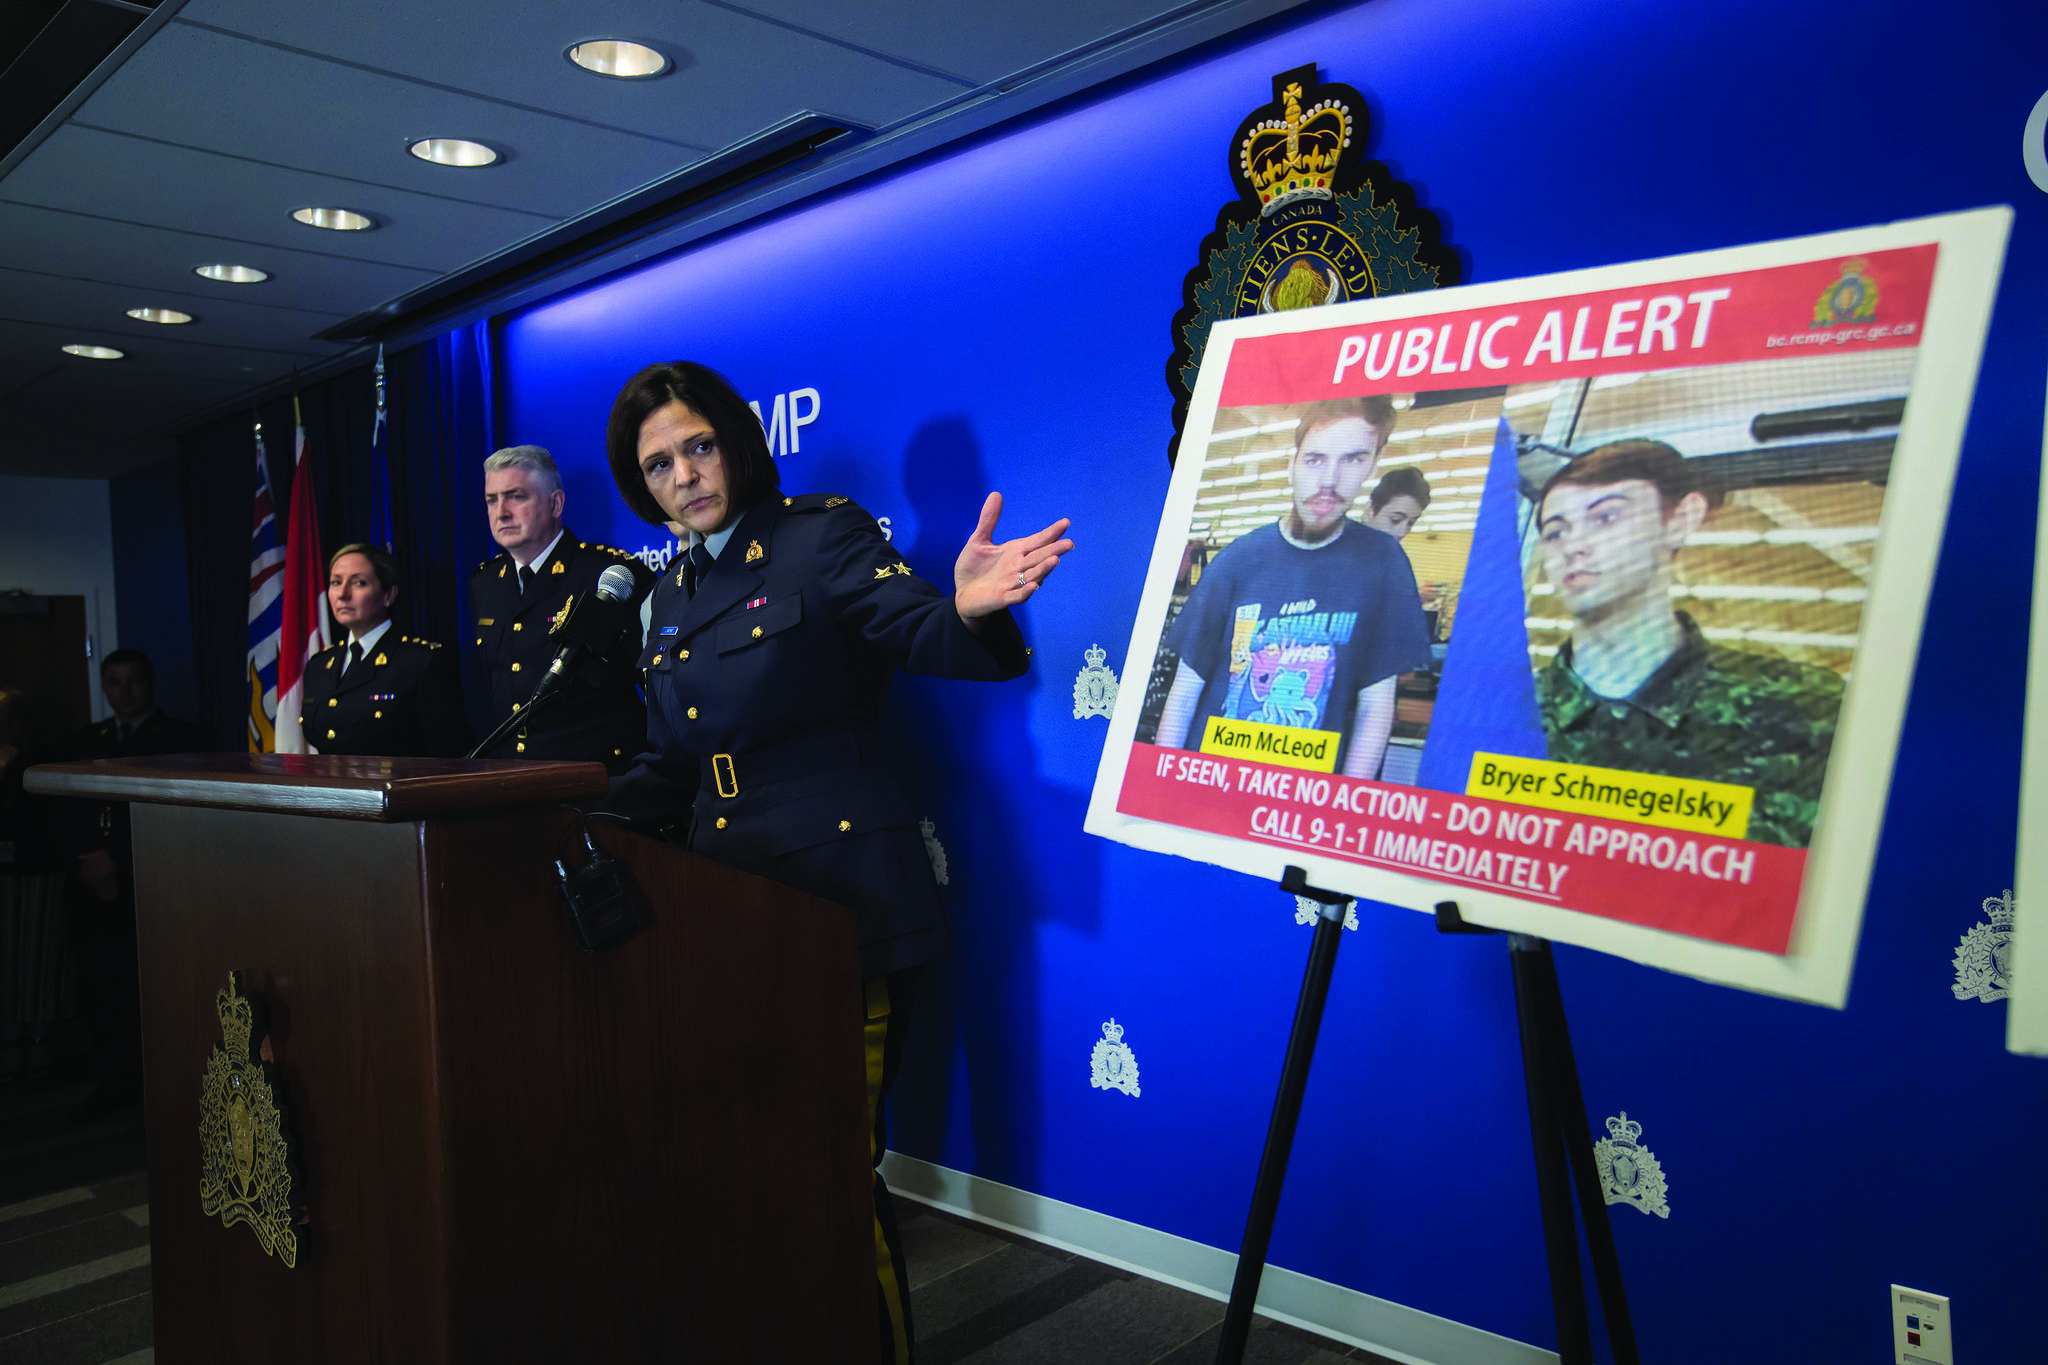 FILE – Security camera images recorded in Saskatchewan of Kam McLeod, 19, and Bryer Schmegelsky, 18, are displayed as RCMP Sgt. Janelle Shoihet speaks during a news conference in Surrey, B.C., on Tuesday July 23, 2019. THE CANADIAN PRESS/Darryl Dyck